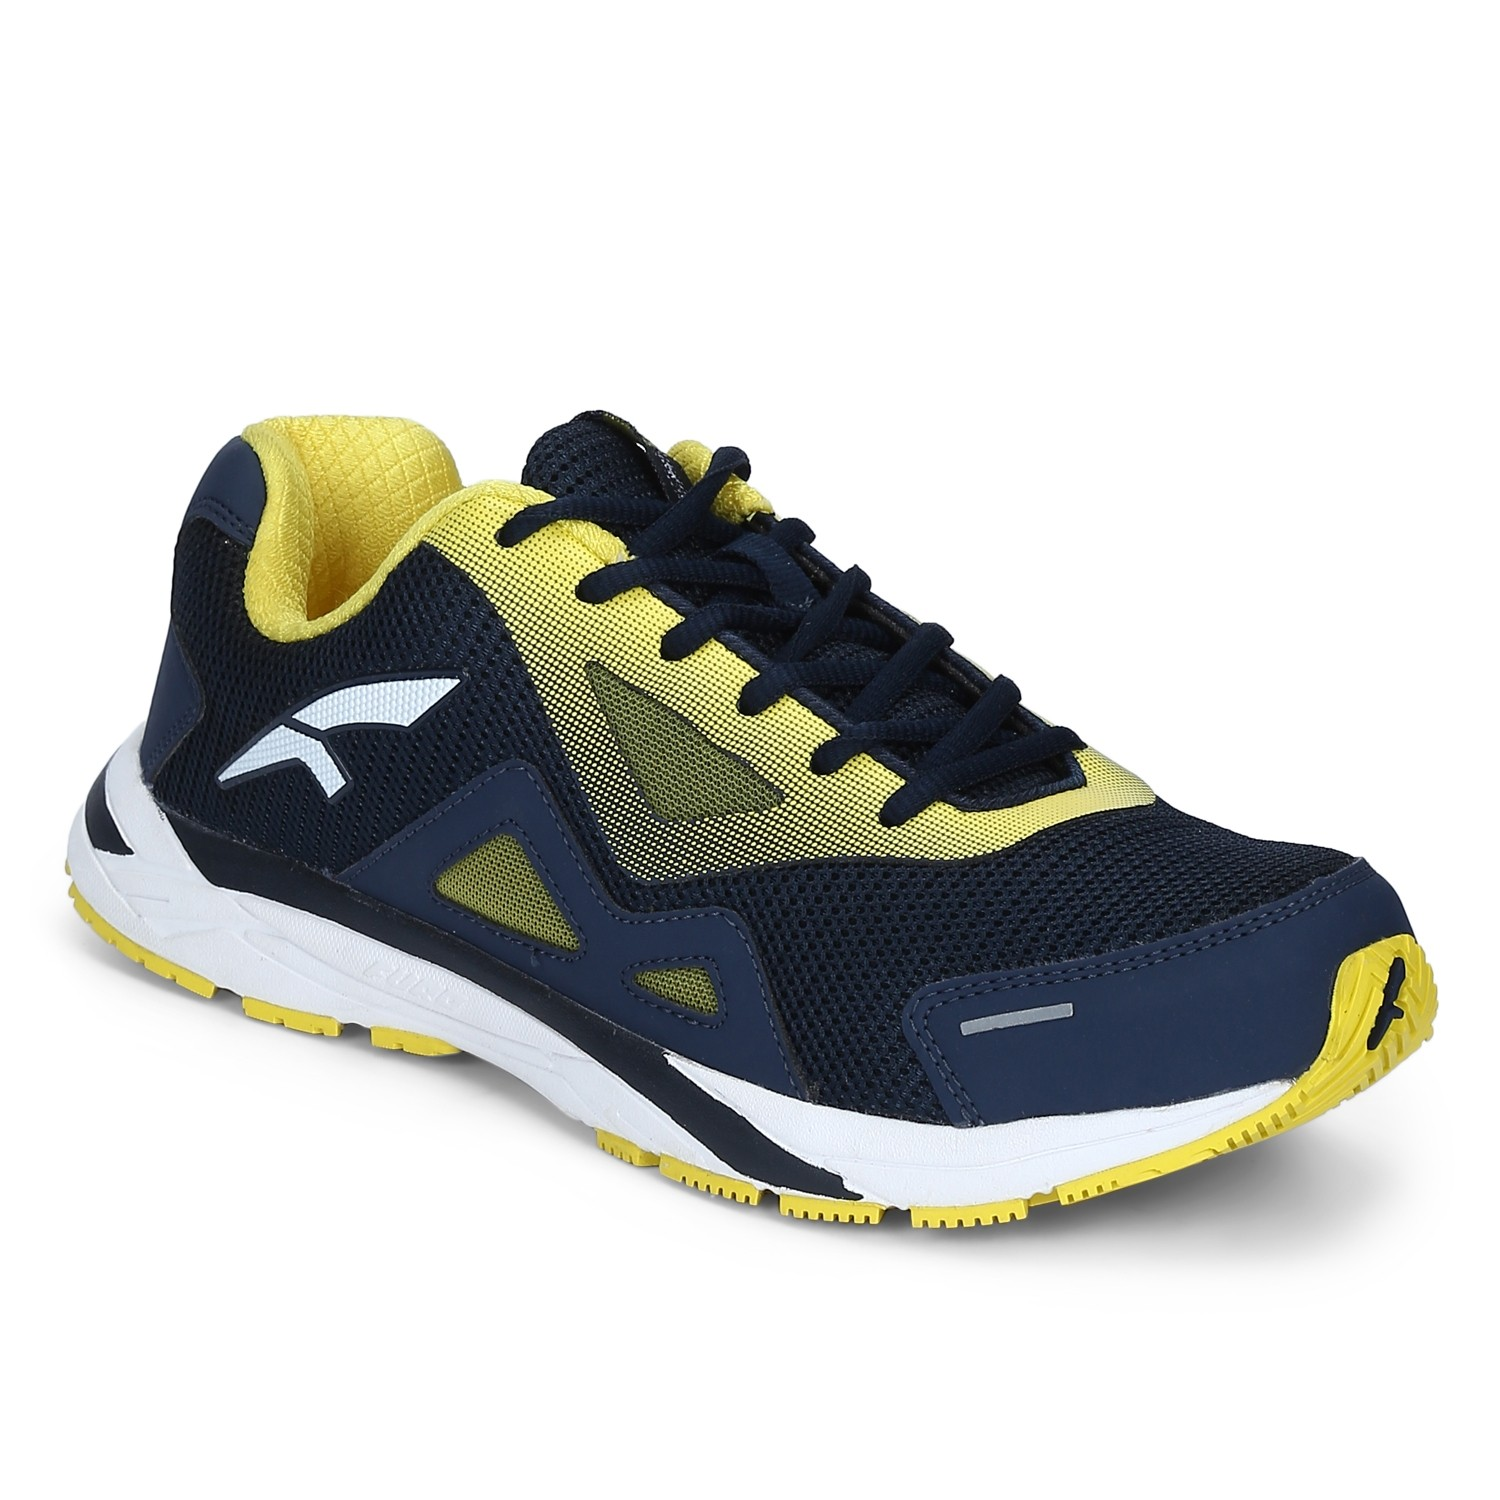 FURO R1007 | Running Shoes for Men